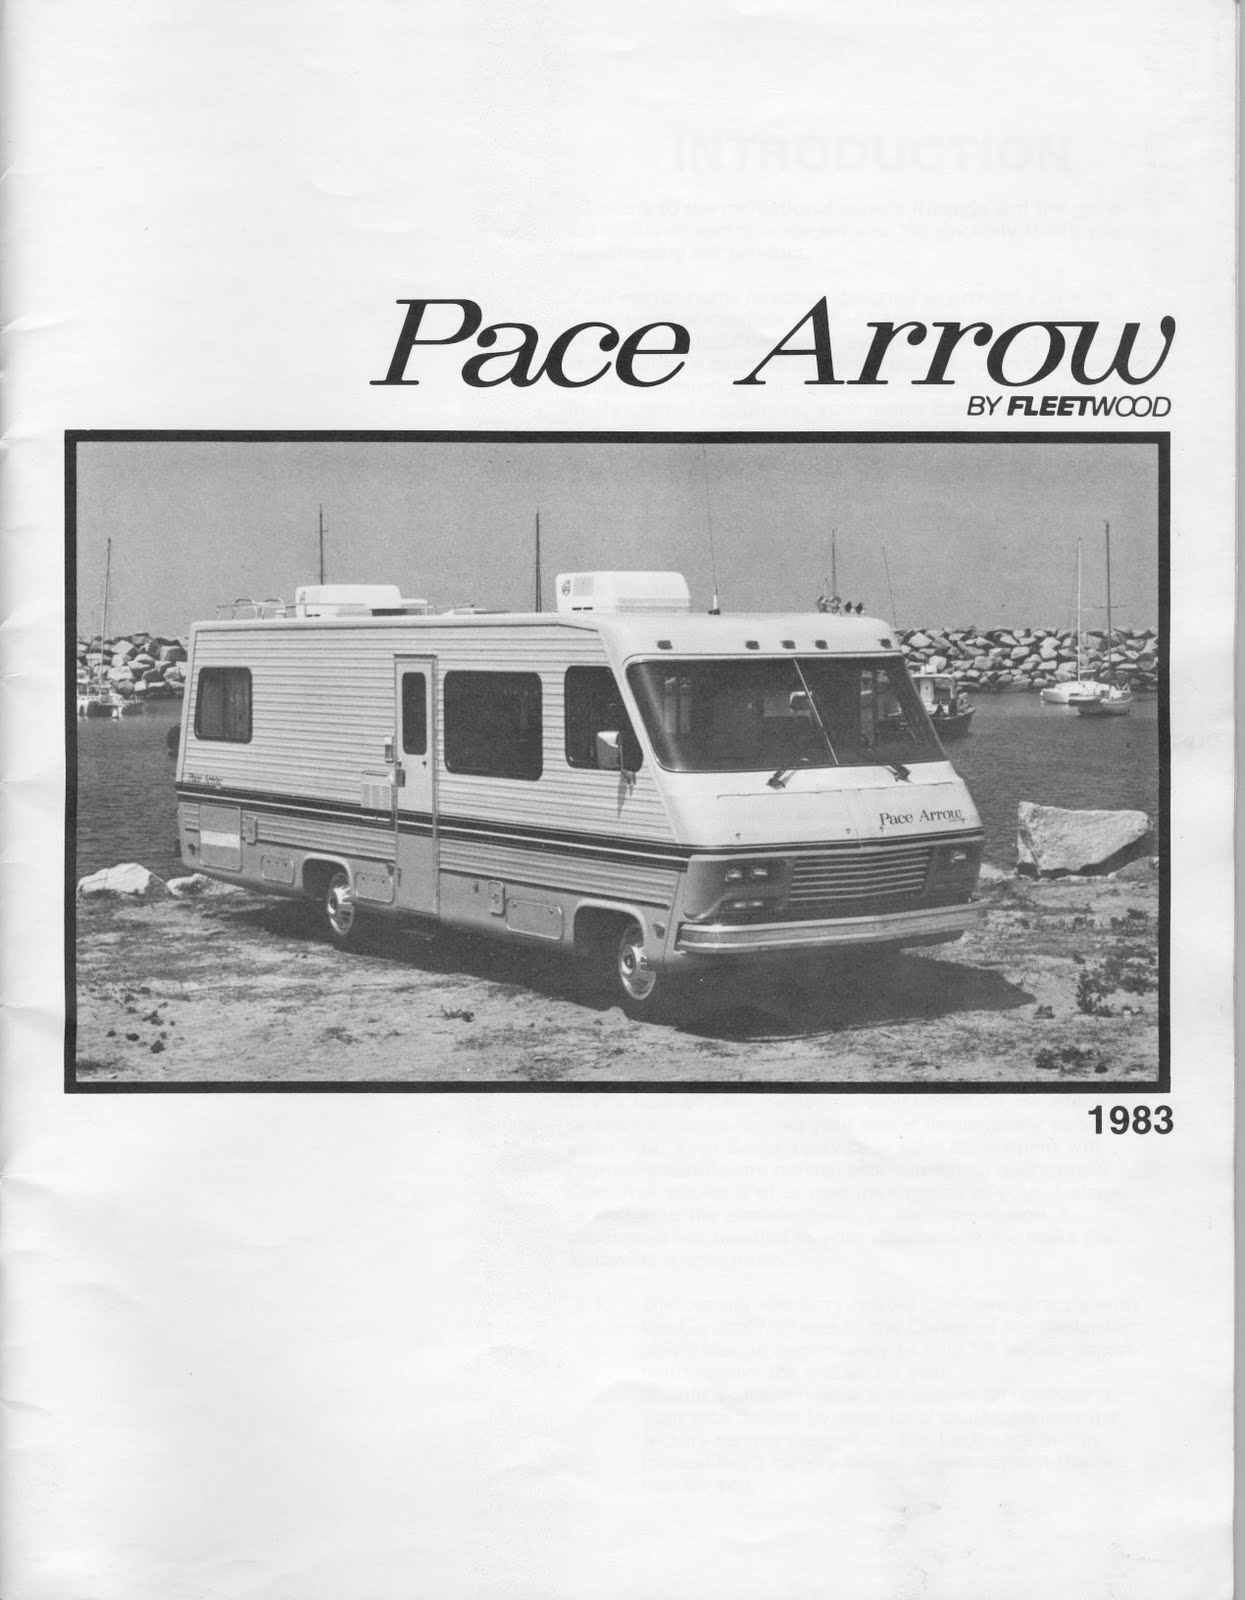 1983 Fleetwood Pace Arrow Owners Manuals: 1983 Fleetwood Pace Arrow on pace arrow fuel diagram, pace arrow tires, pace arrow assembly, pace arrow radiator, pace arrow manual, pace arrow schematics, pace arrow charging system, pace arrow repair,